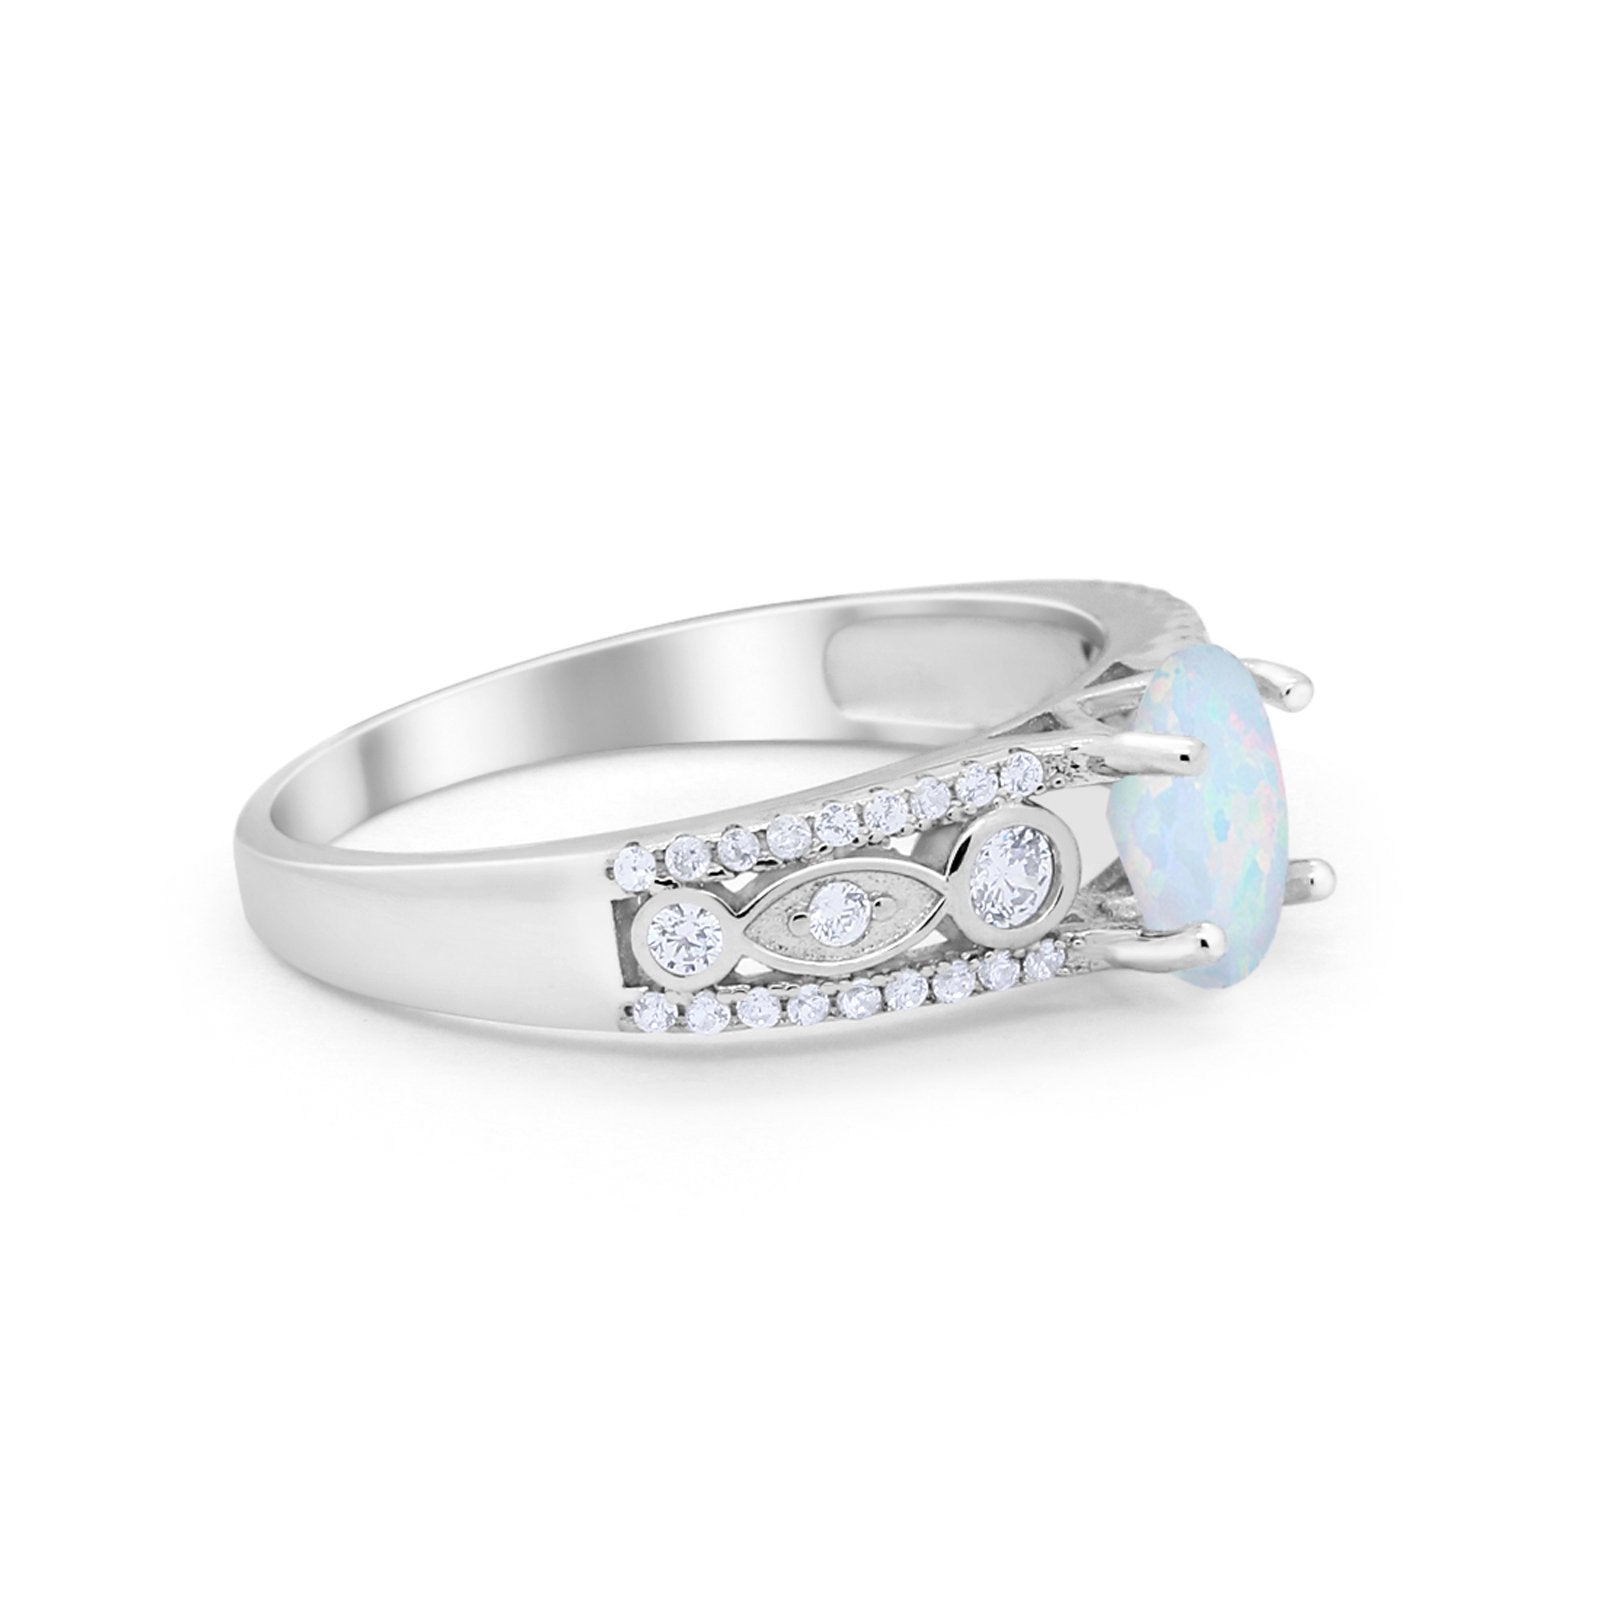 Art Deco Wedding Ring Oval Simulated Cubic Zirconia 925 Sterling Silver